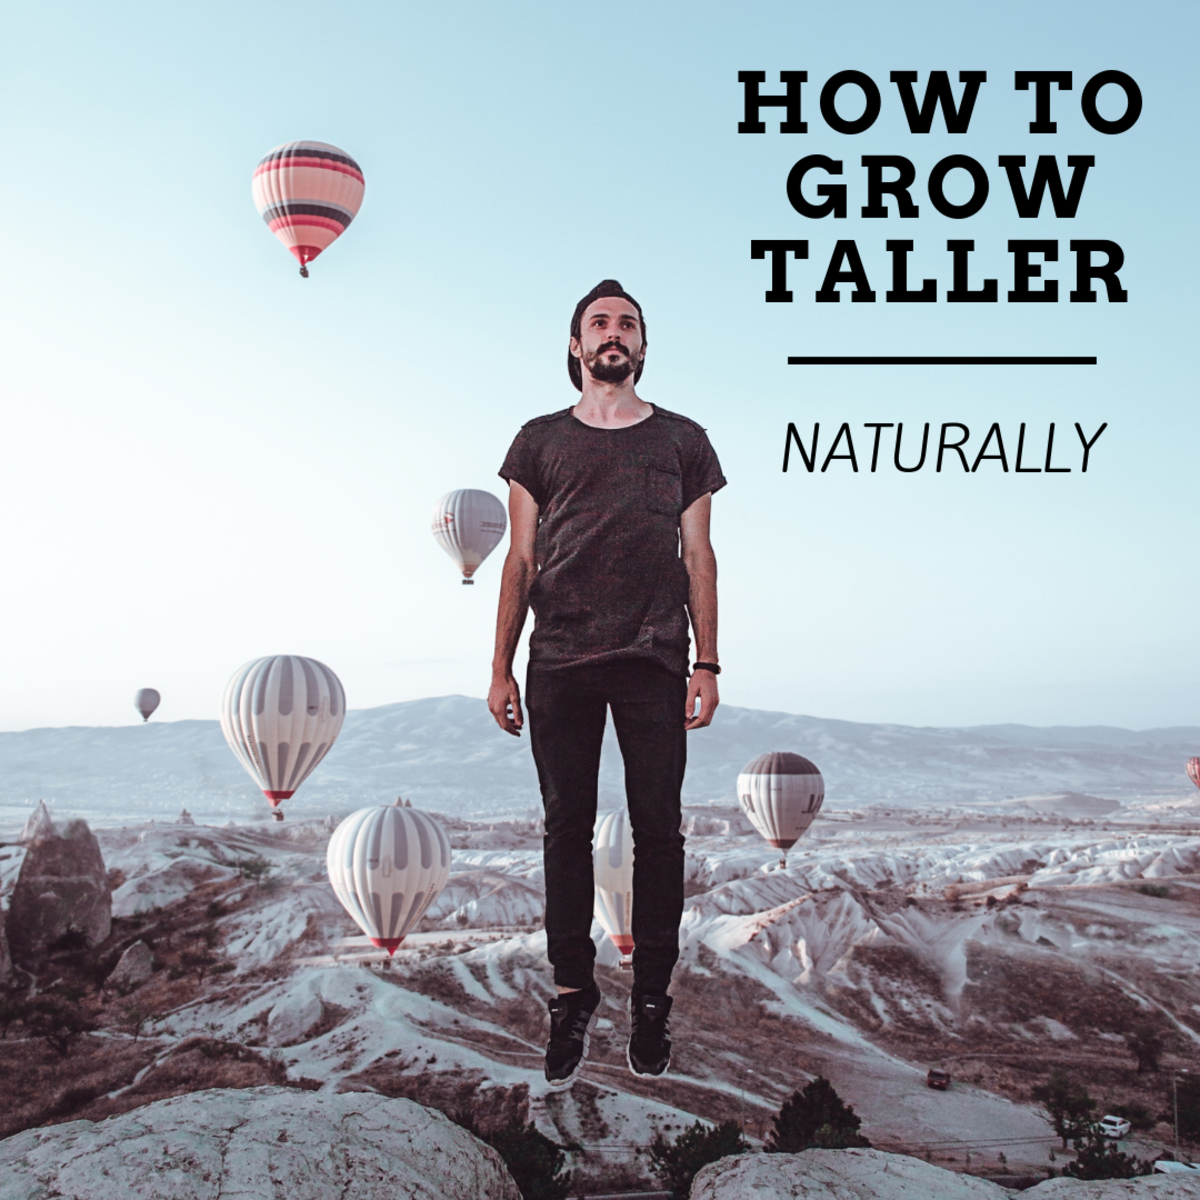 Learn about tips and tricks to increase your height and body length at any age.